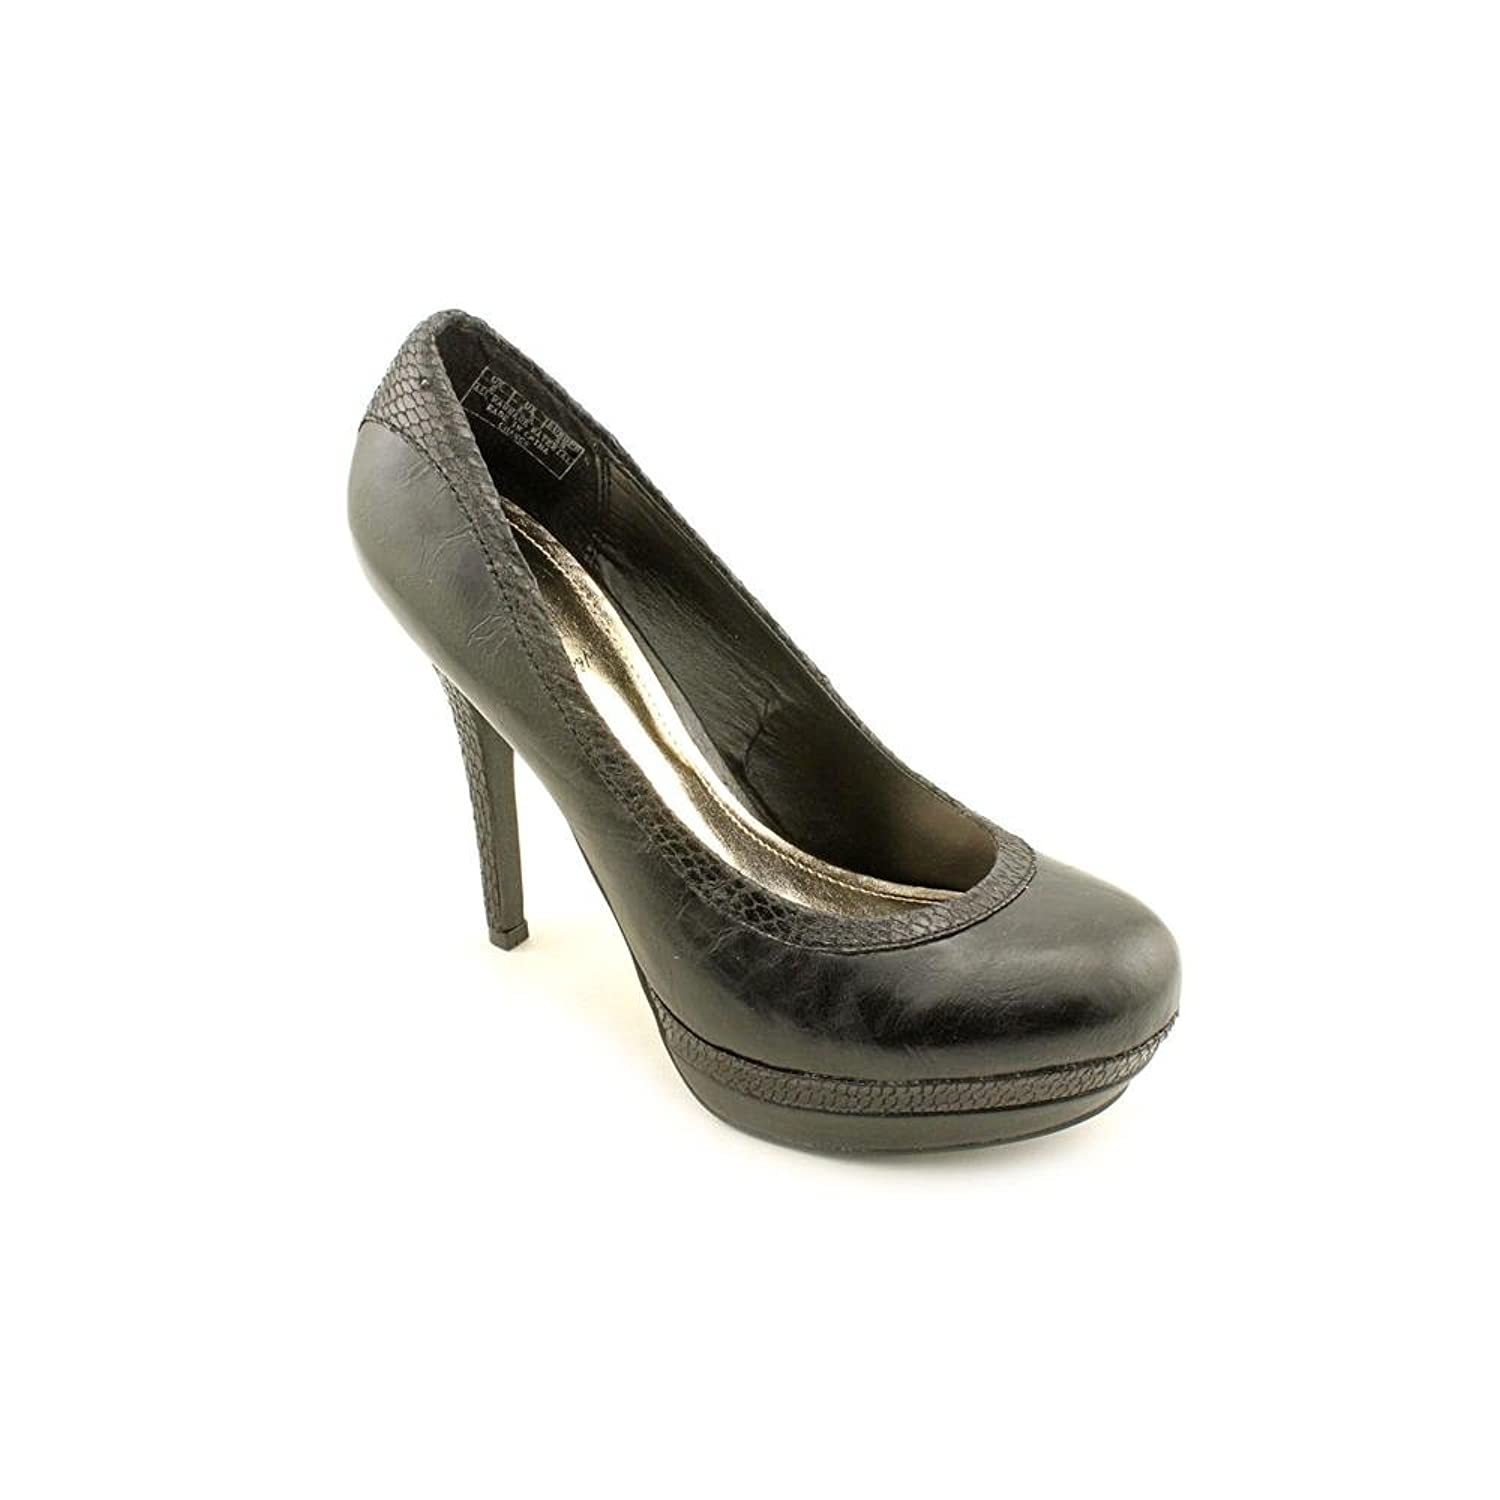 6e1e255d9f378 Baby Phat Women Chance Heels & Pumps